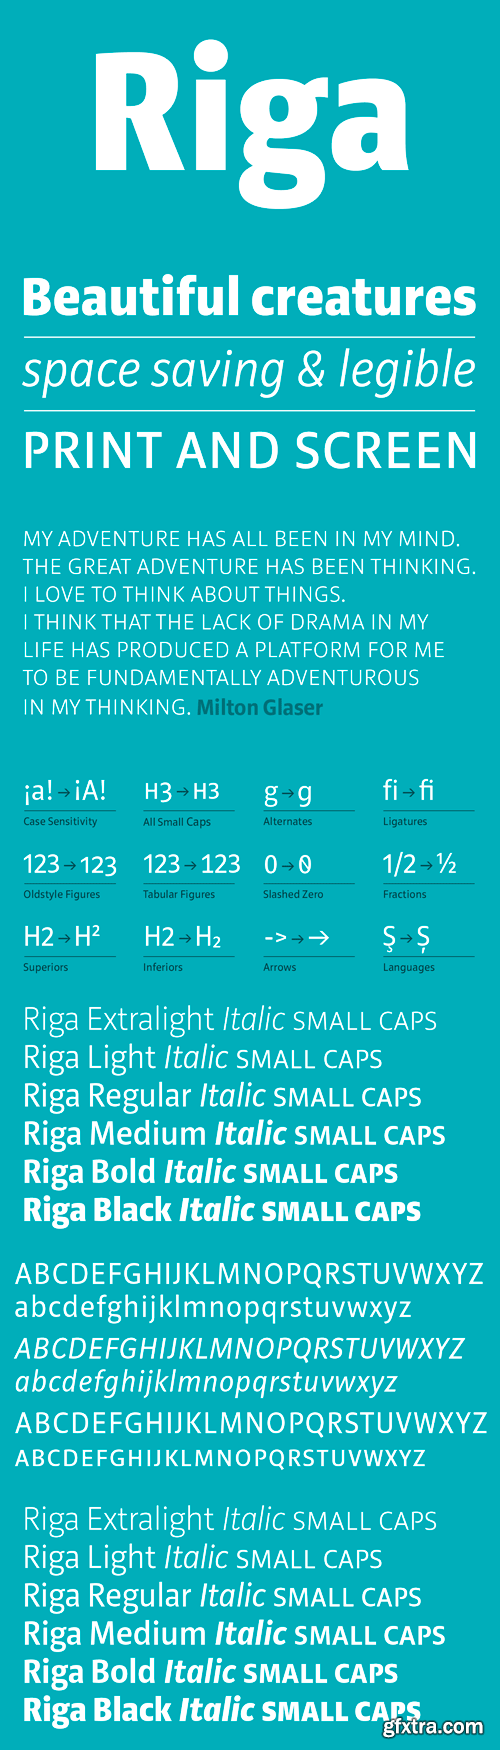 Riga Font Family - 18 Fonts for $449